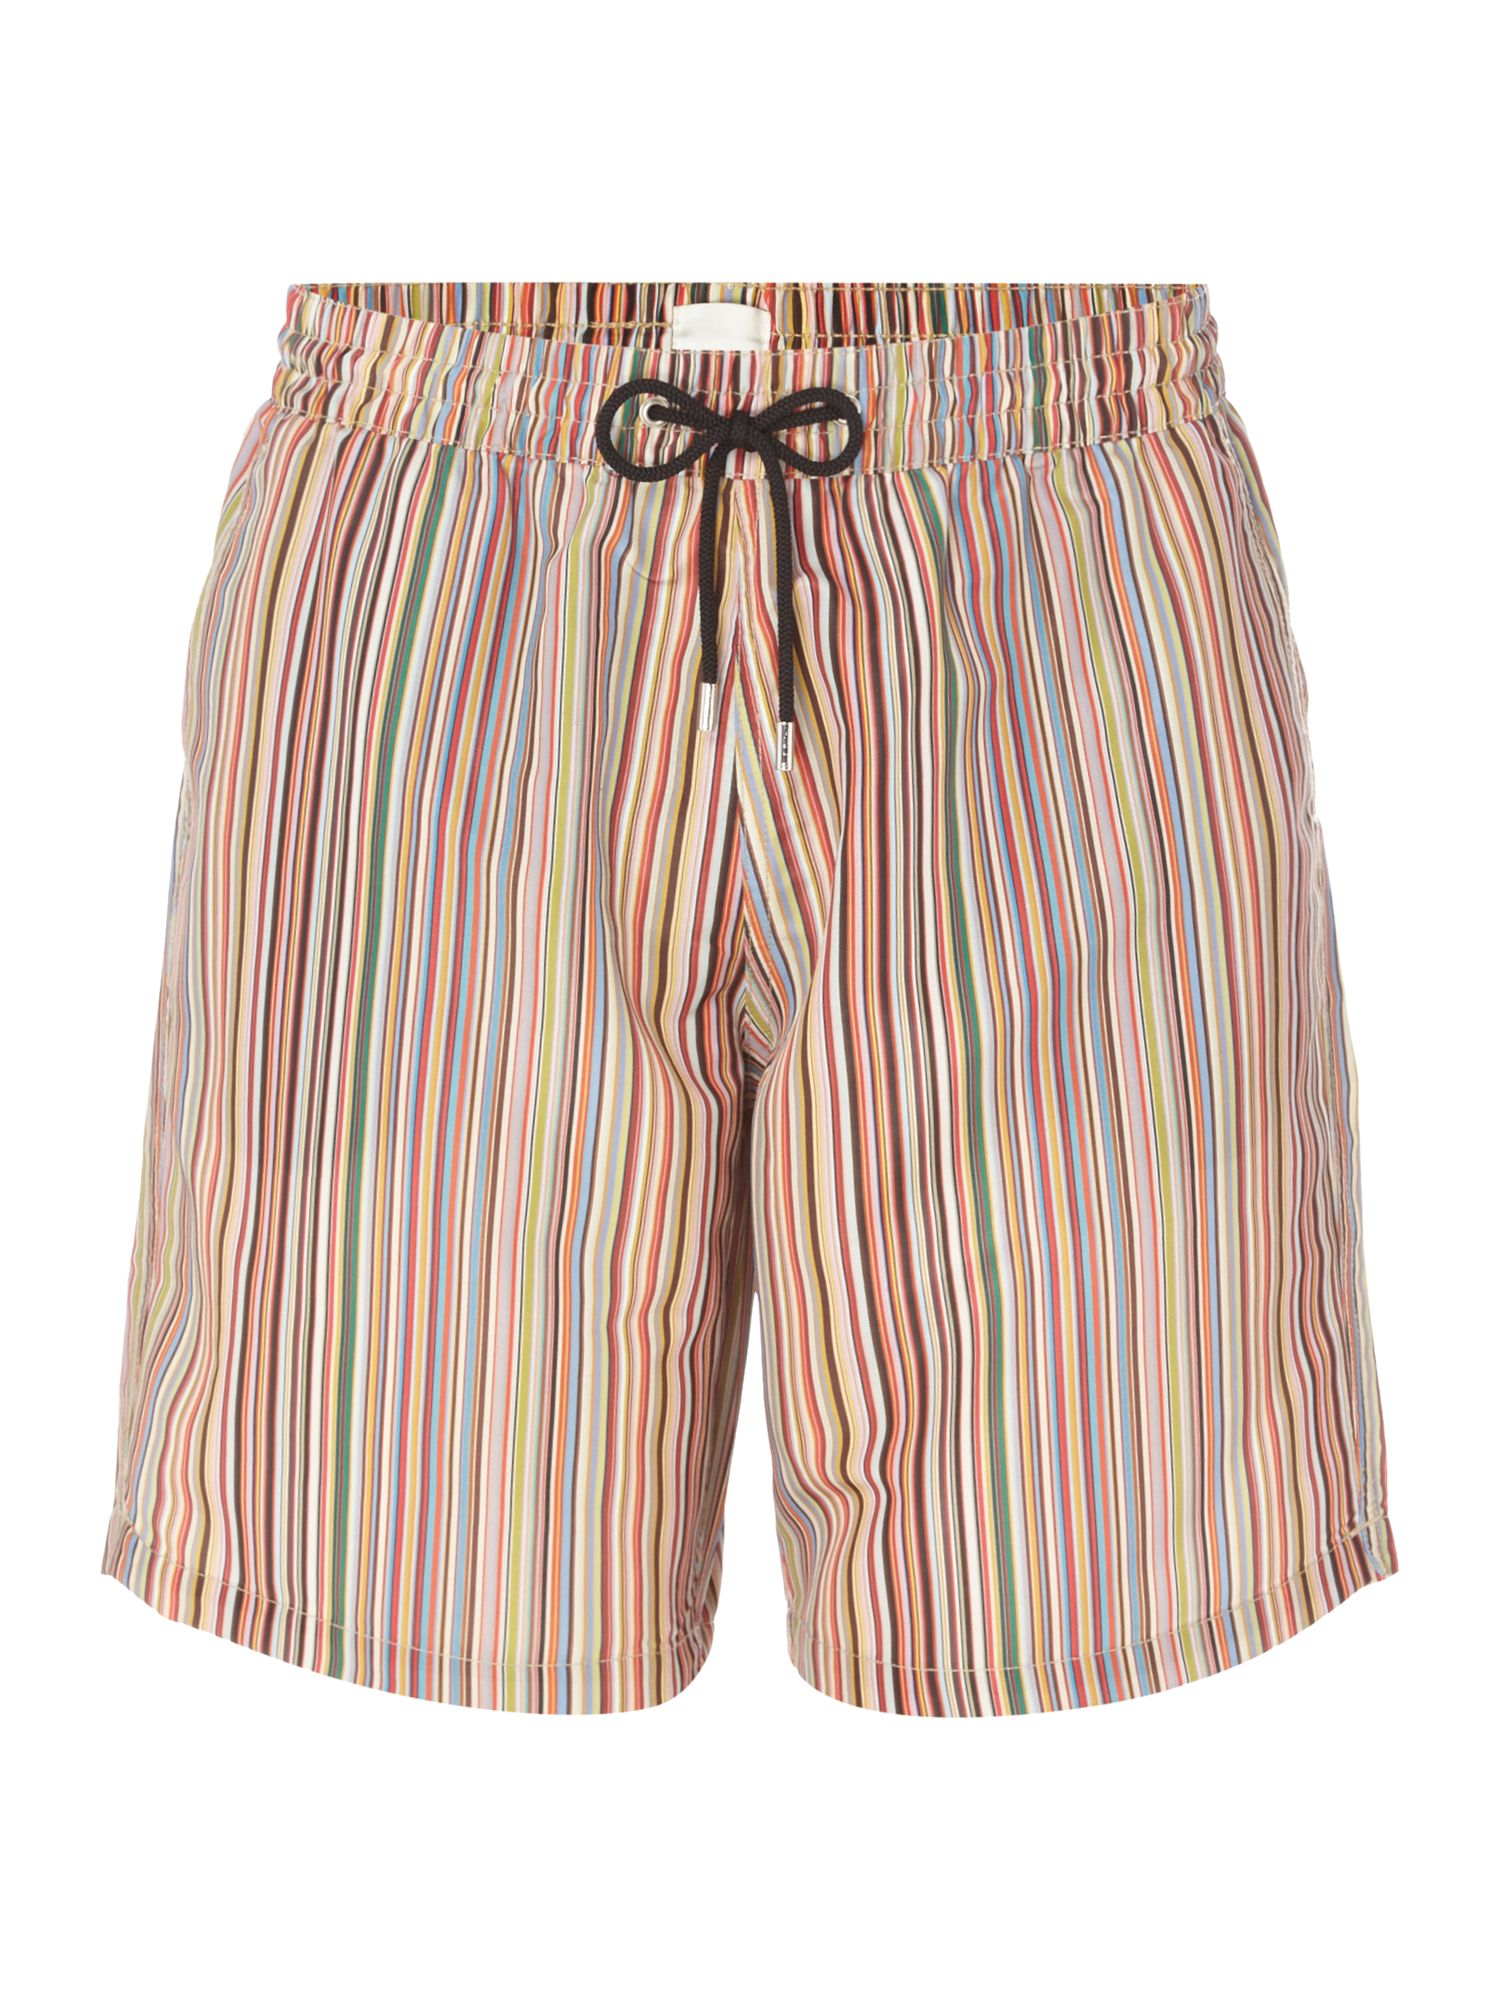 Men's Paul Smith Long Multistripe Swim Shorts, Multi-Coloured